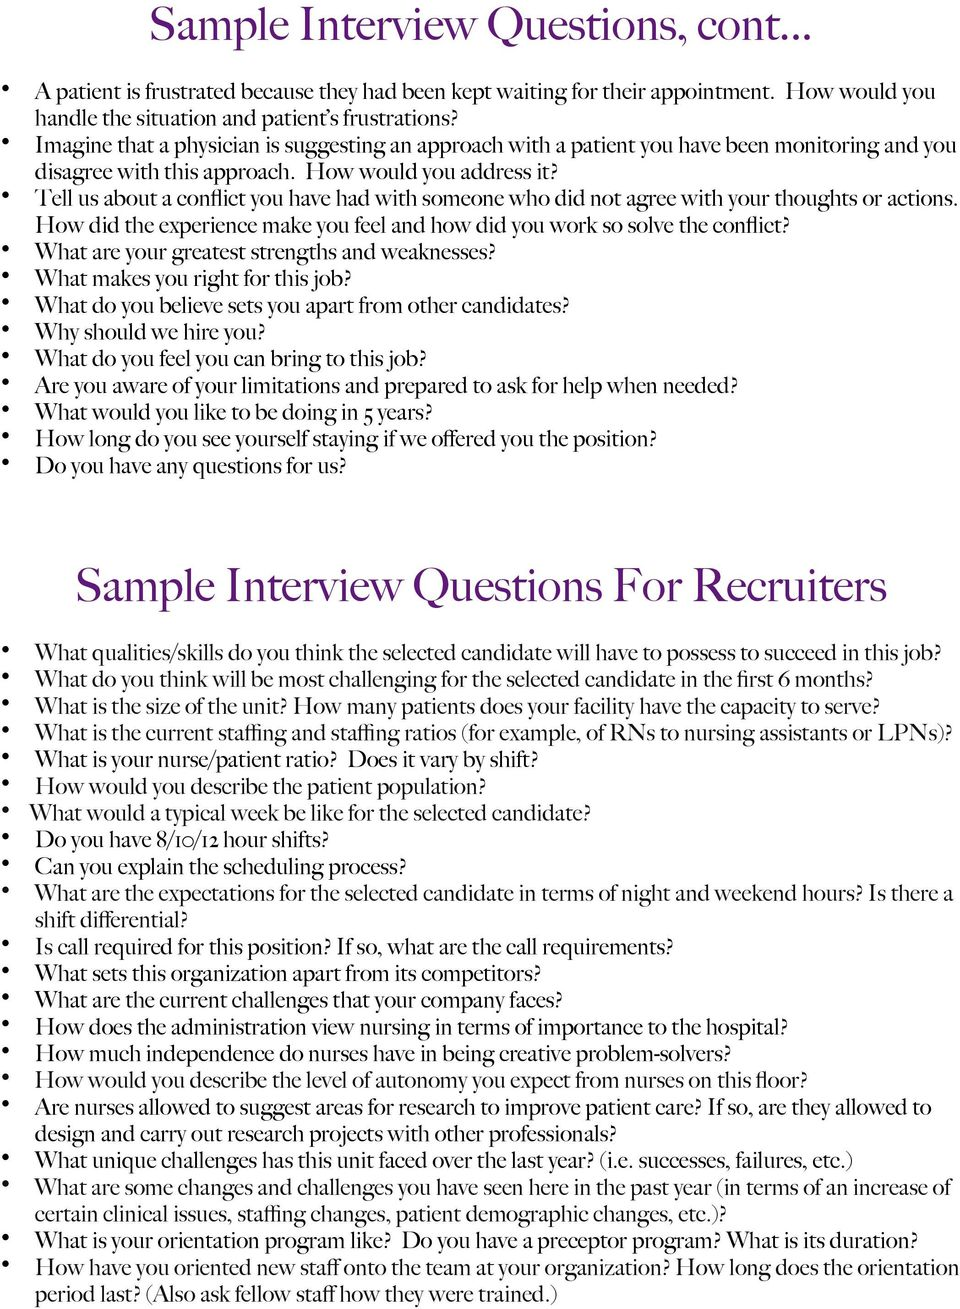 nursing interview success packet pdf tell us about a conflict you have had someone who did not agree your 9 sample interview questions